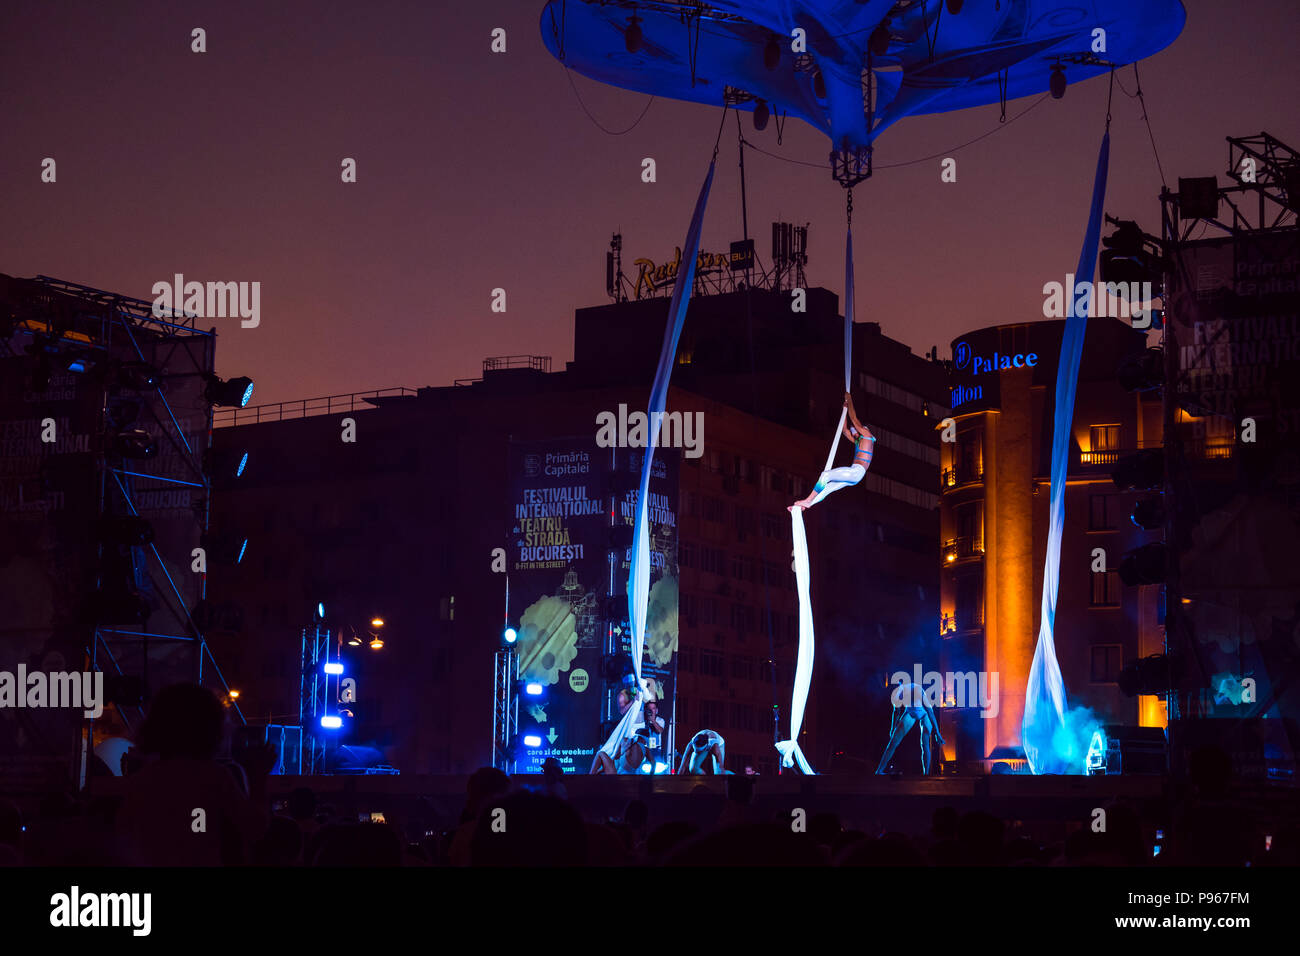 Bucharest, ROMANIA - July 14 2018: Sonics in Wish performance at Street Theater Festival. Blindfolded dancers climbing the rope and performing aerial  - Stock Image